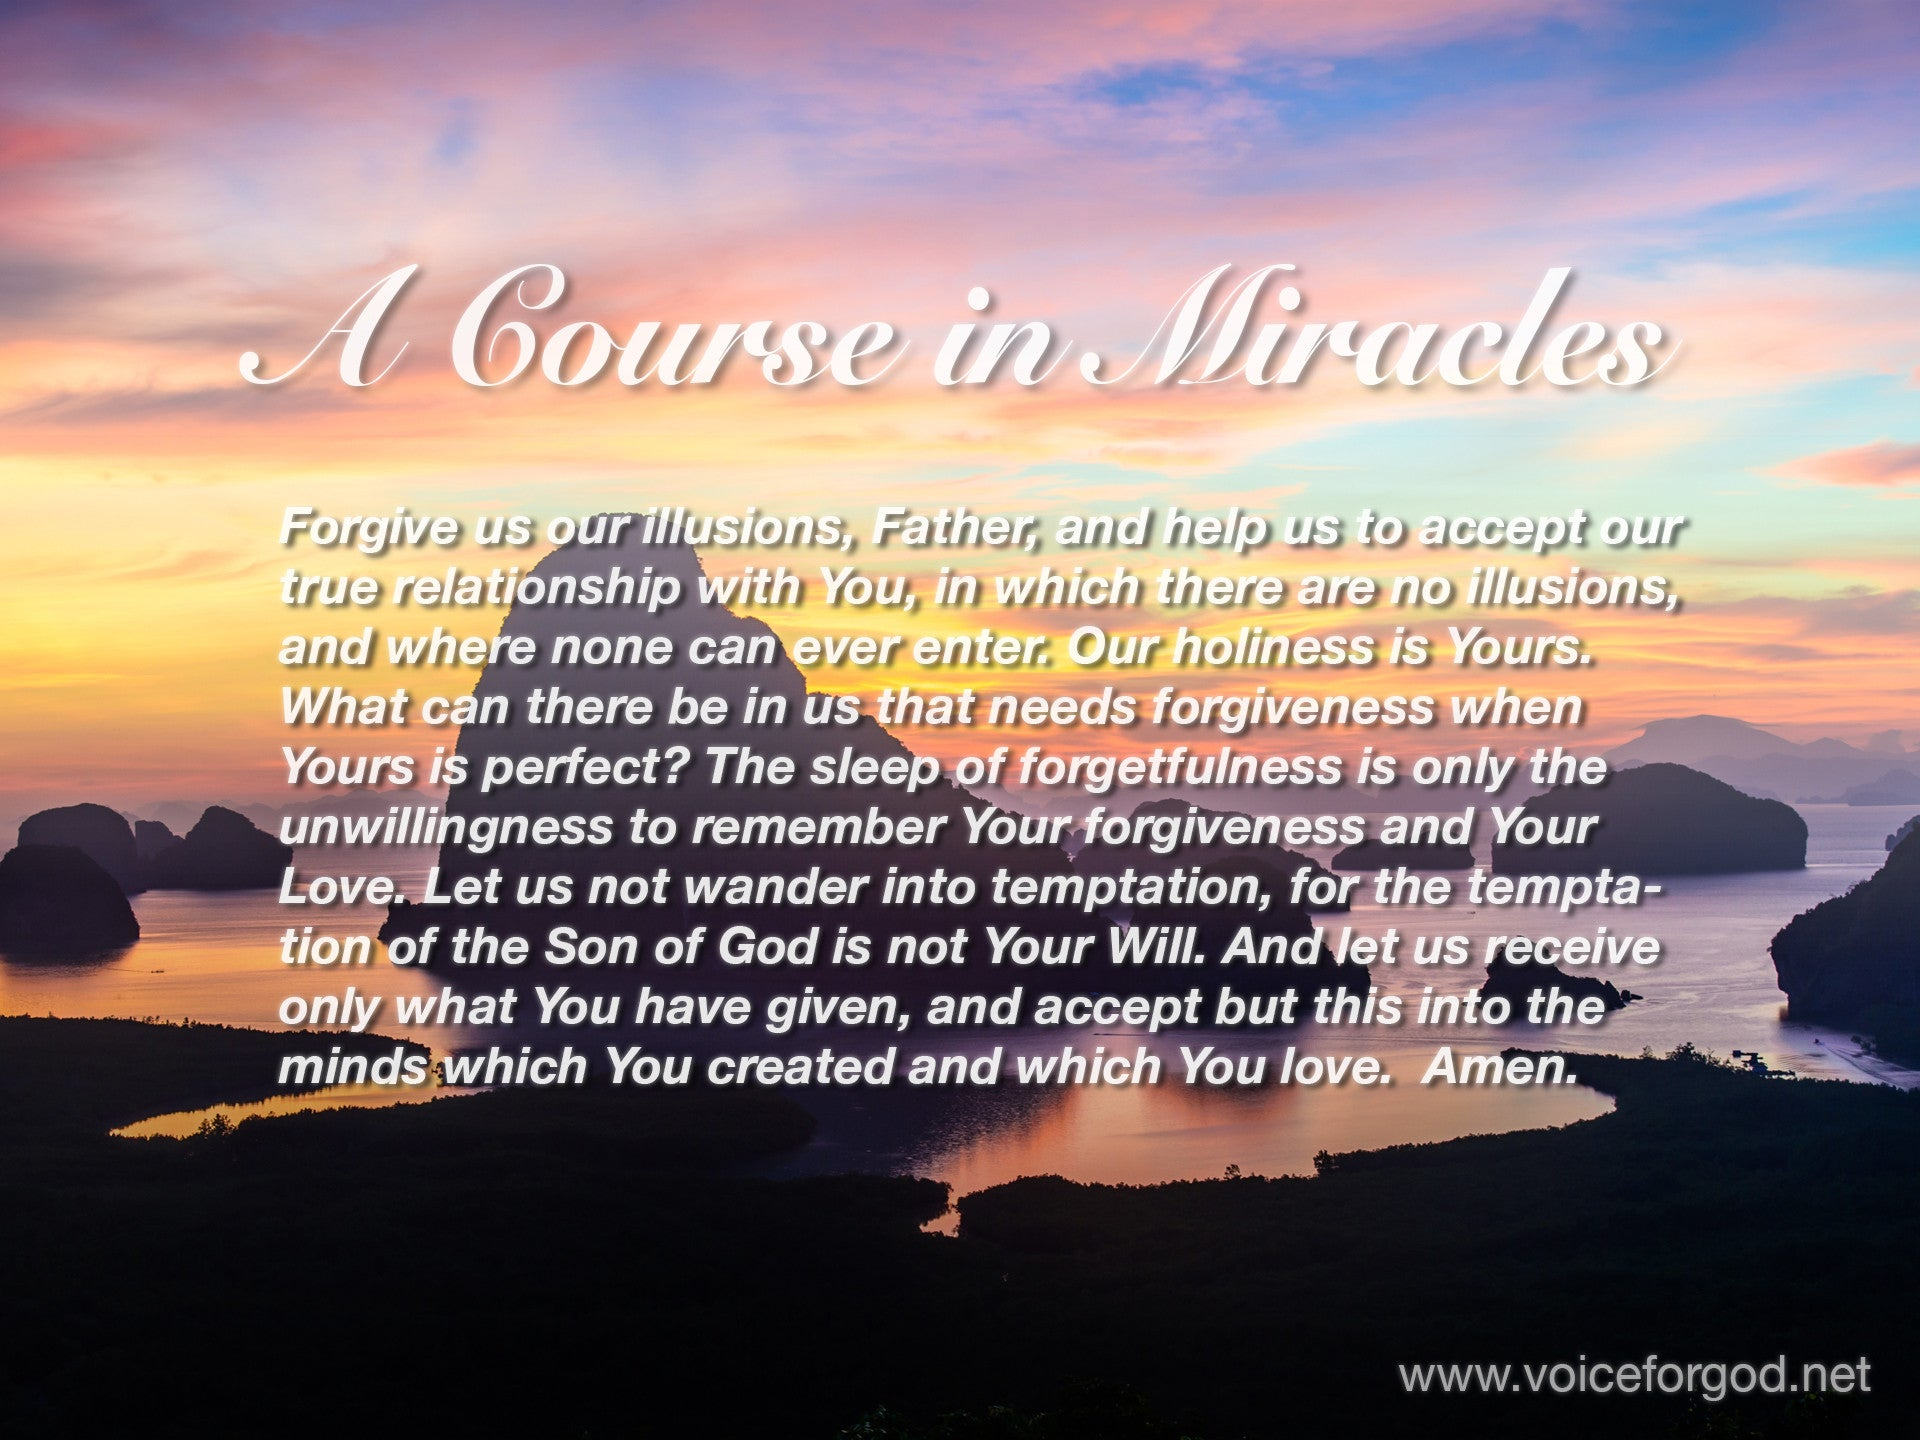 ACIM Quote 1054 A Course in Miracles Quotes